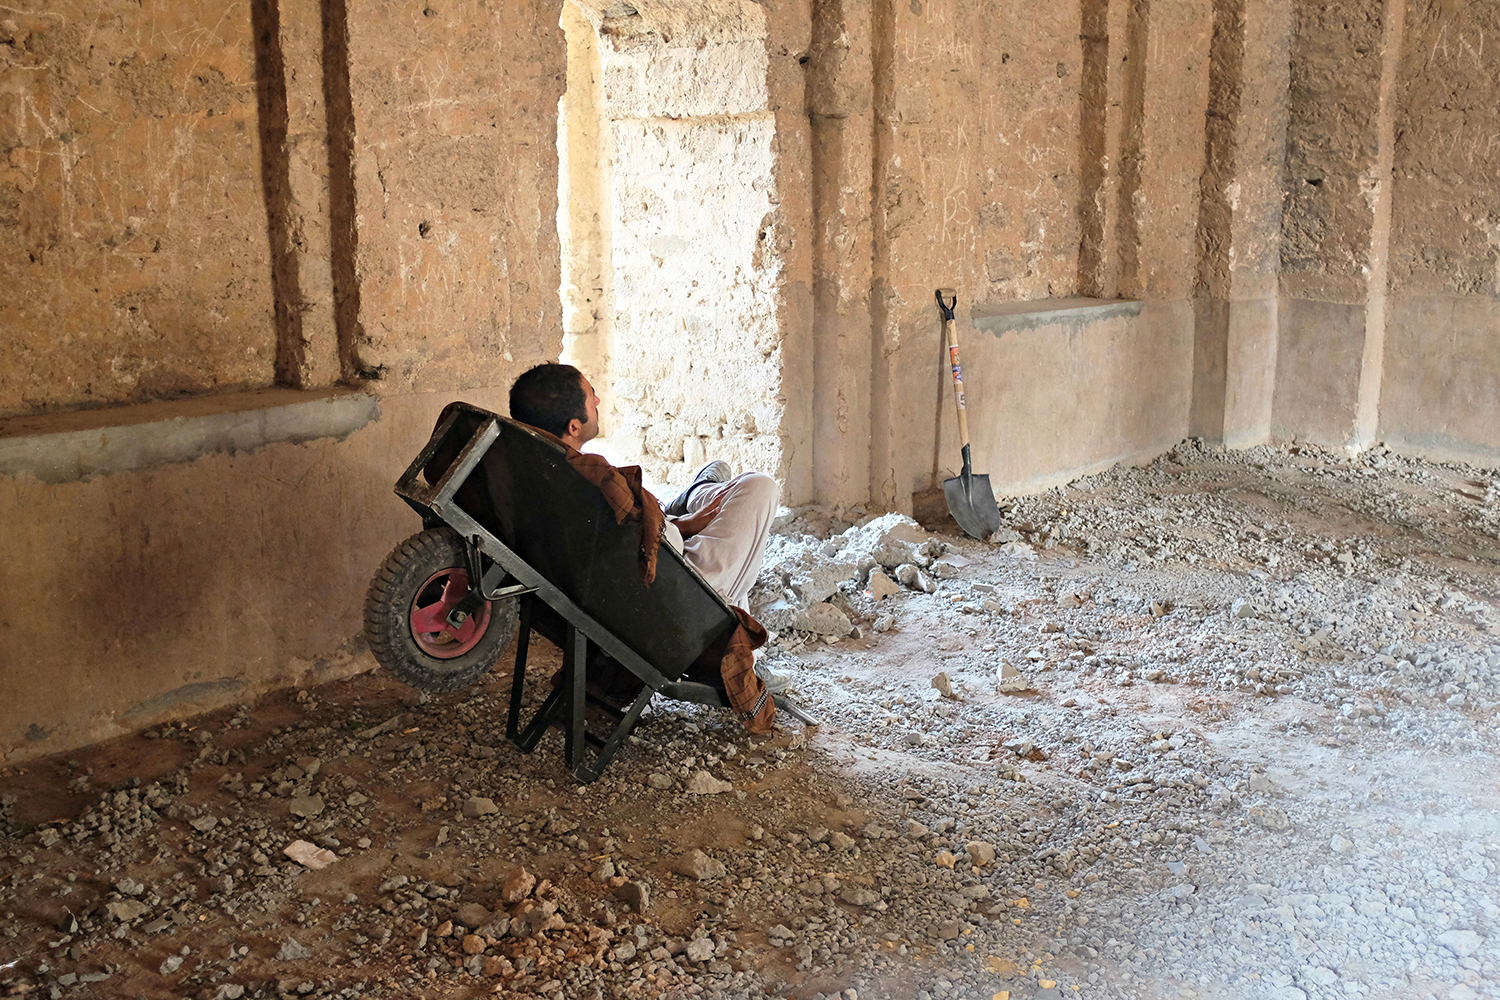 A labourer working on renovation at Rawat fort takes a break.